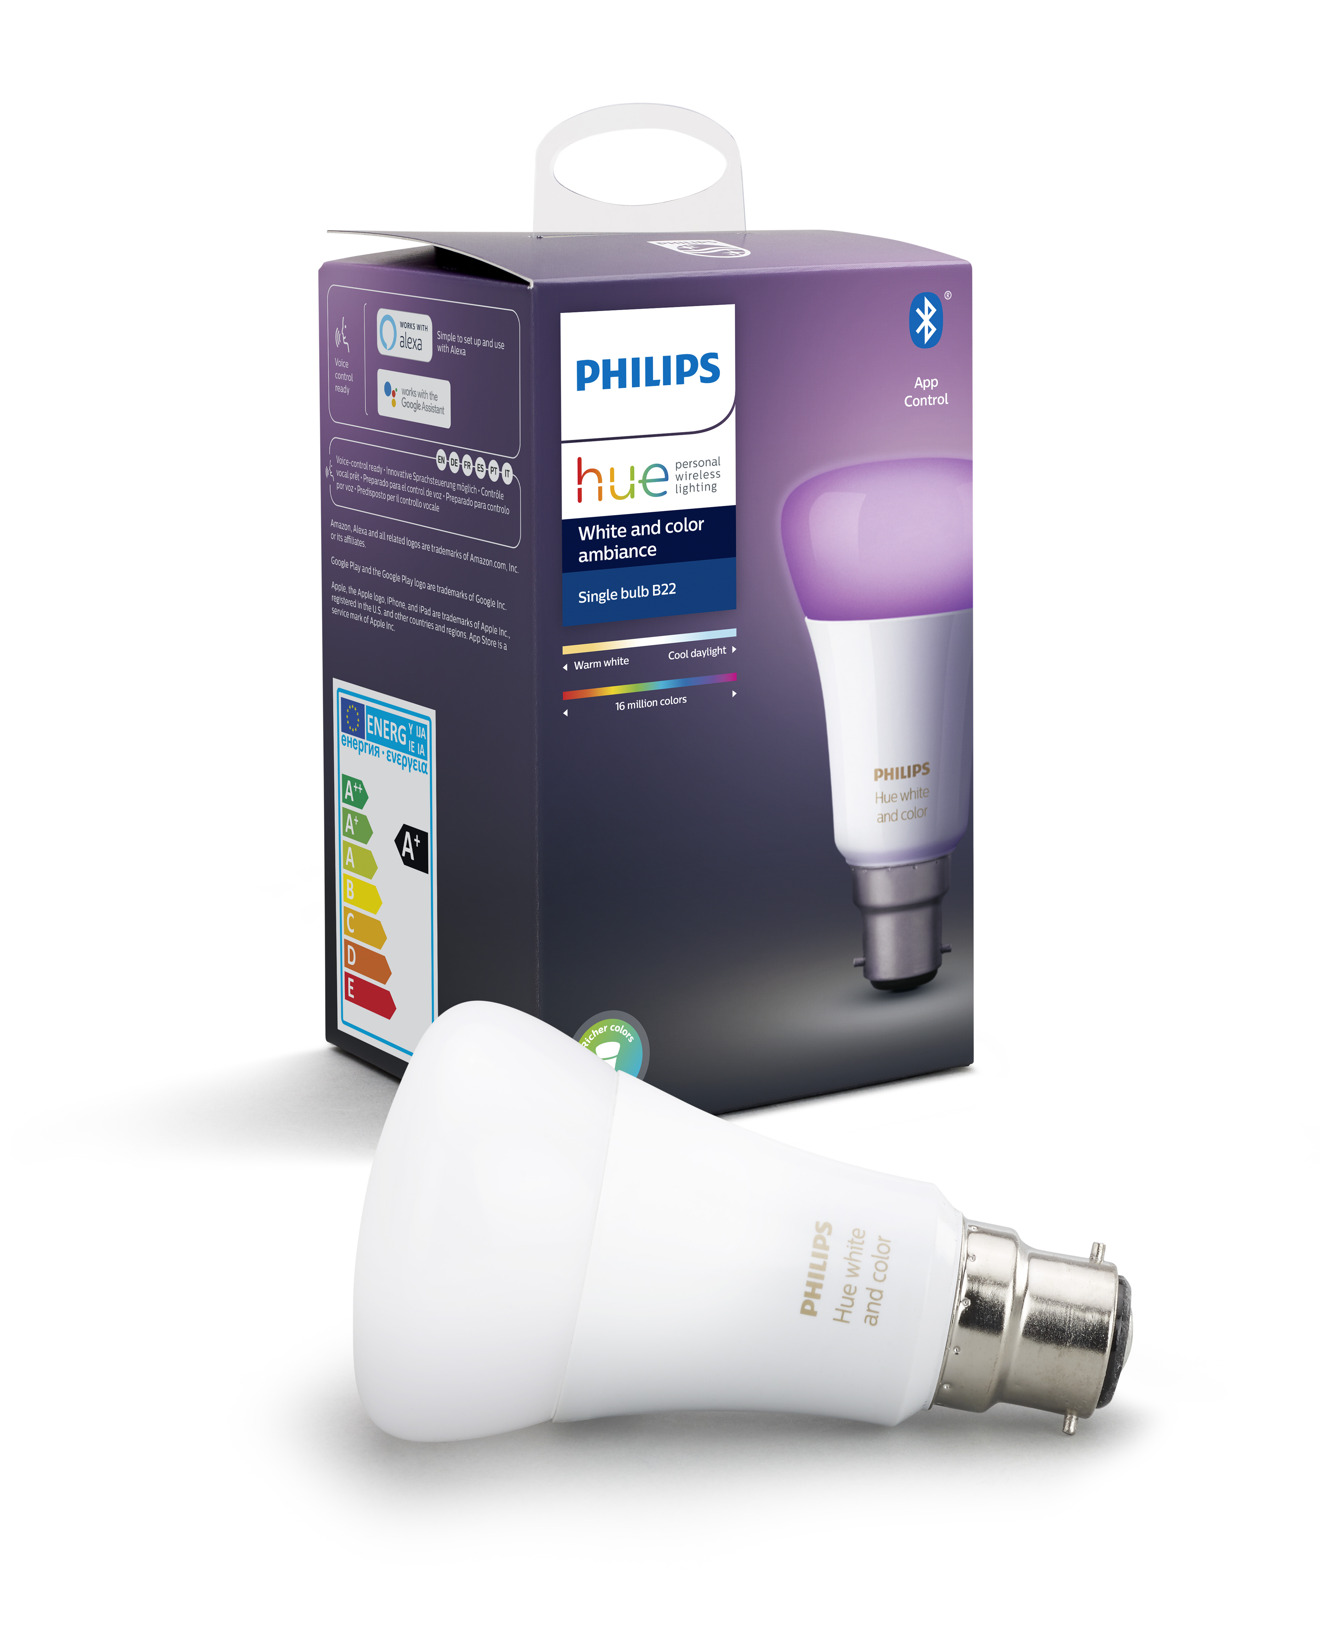 New Philips Hue bulbs updated with Bluetooth connectivity